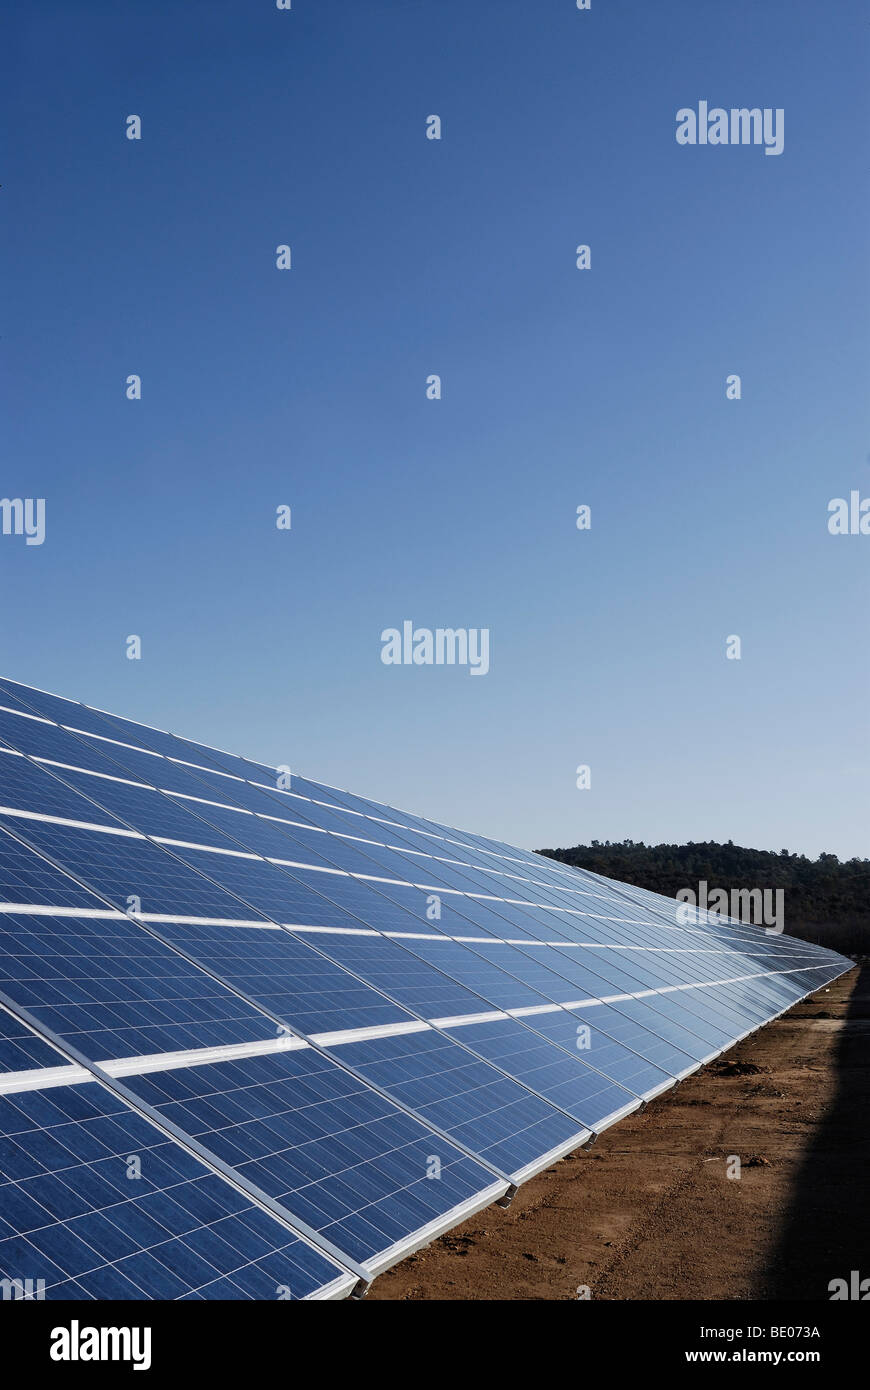 Solar panel in perspective - Stock Image